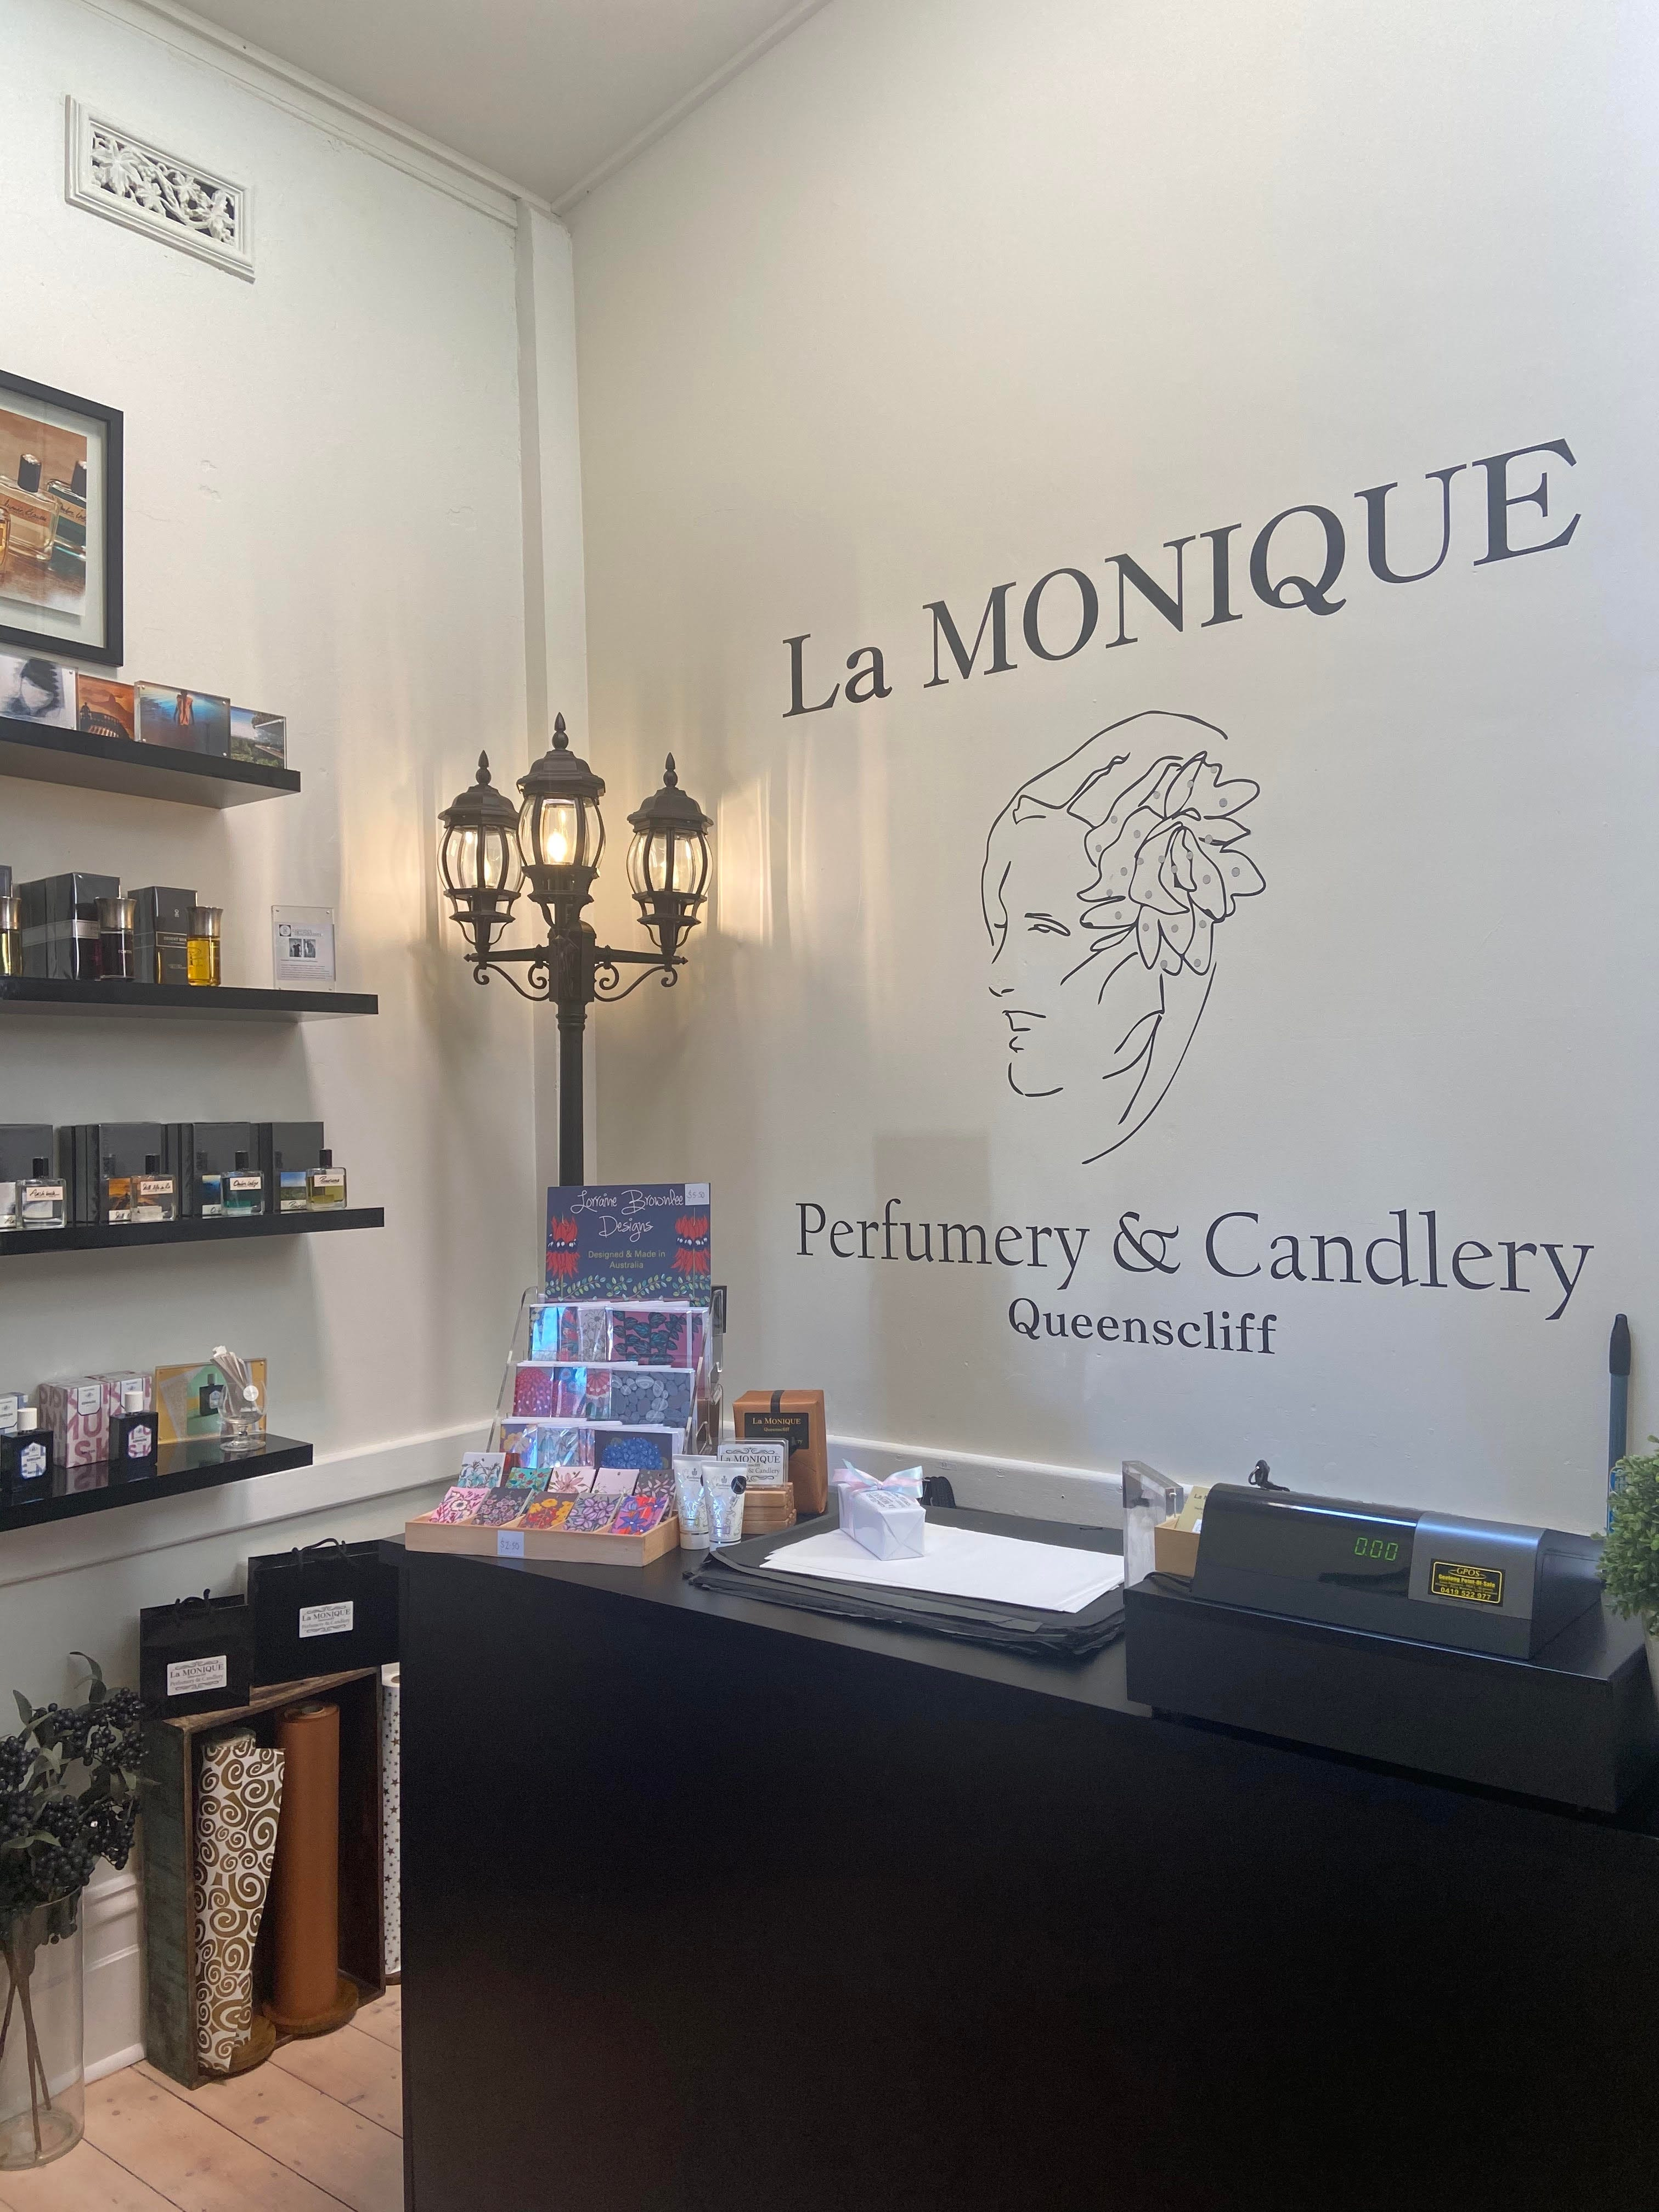 Monique Denahy's sister, Sally Denahy, opened La Monique Perfumery and Candlery in their native Australia after Monique was killed in Wellington in 2015.